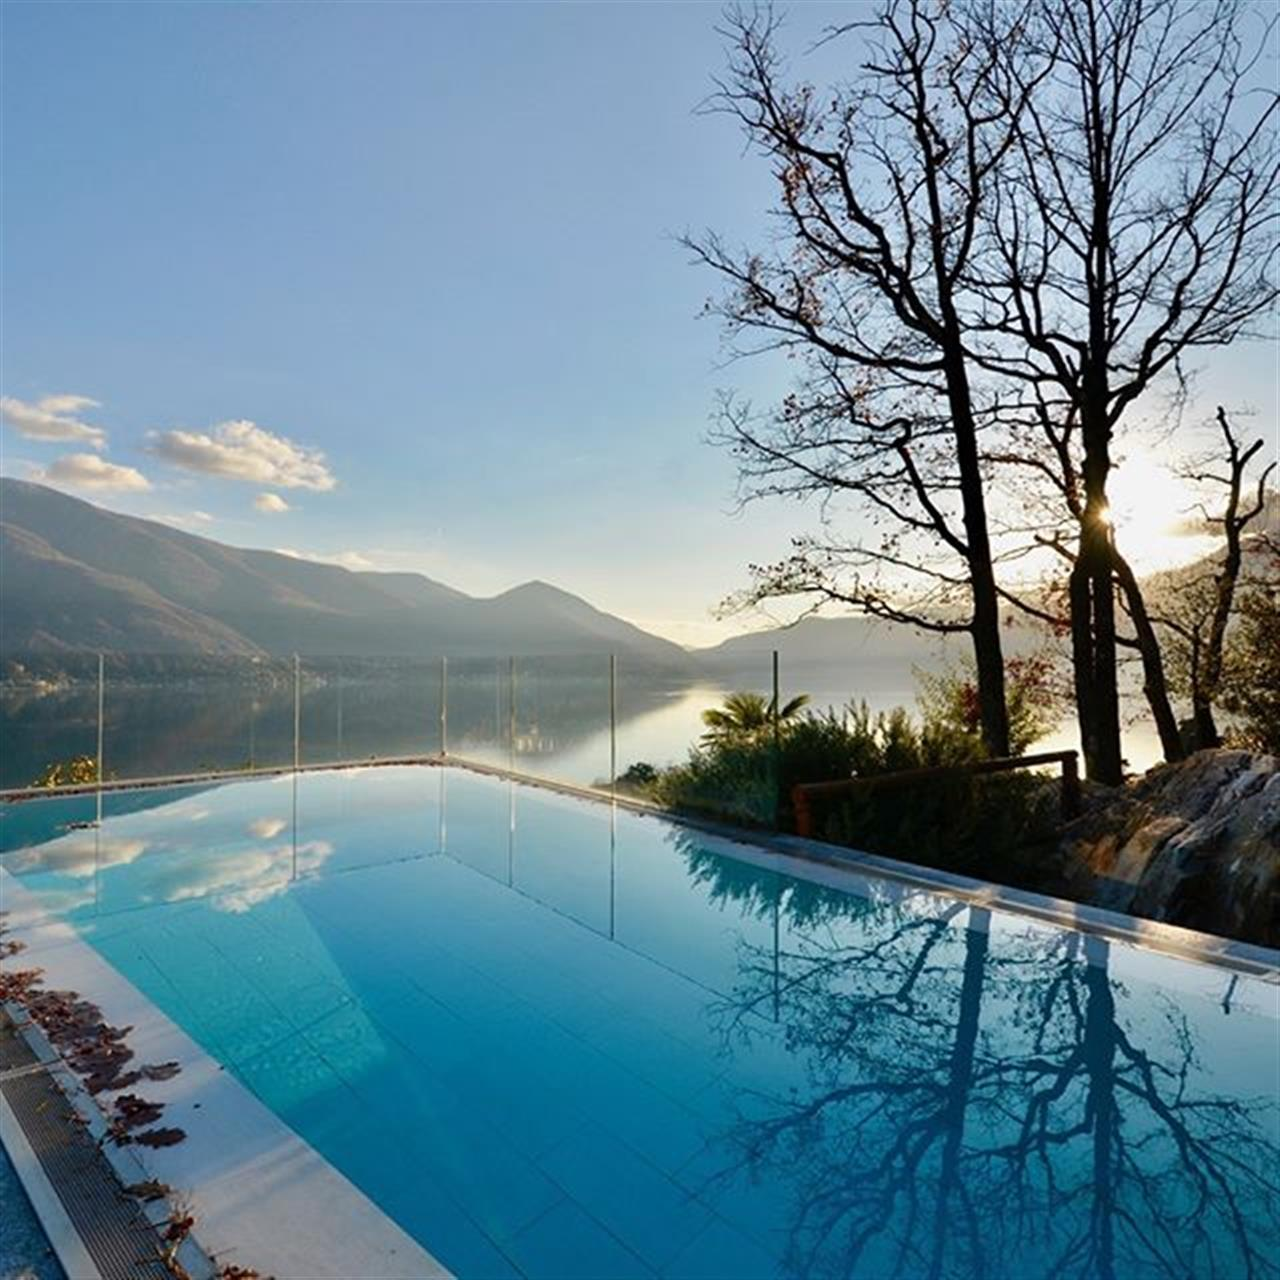 Beautiful #LakeMaggiore view in December last year from #Ascona, #Ticino, #Switzerland. This #apartmentforsale with swimming pool will be next available. WATCH OUT!  #apartmentforsale #luxuryrealestate #inlovewithswitzerland #luxurylife #luxurylifestyle #christiesinternationalrealestate #luxuryportfolio #wetagconsulting #leadingre #ChristiesHomes #LeadingRElocal